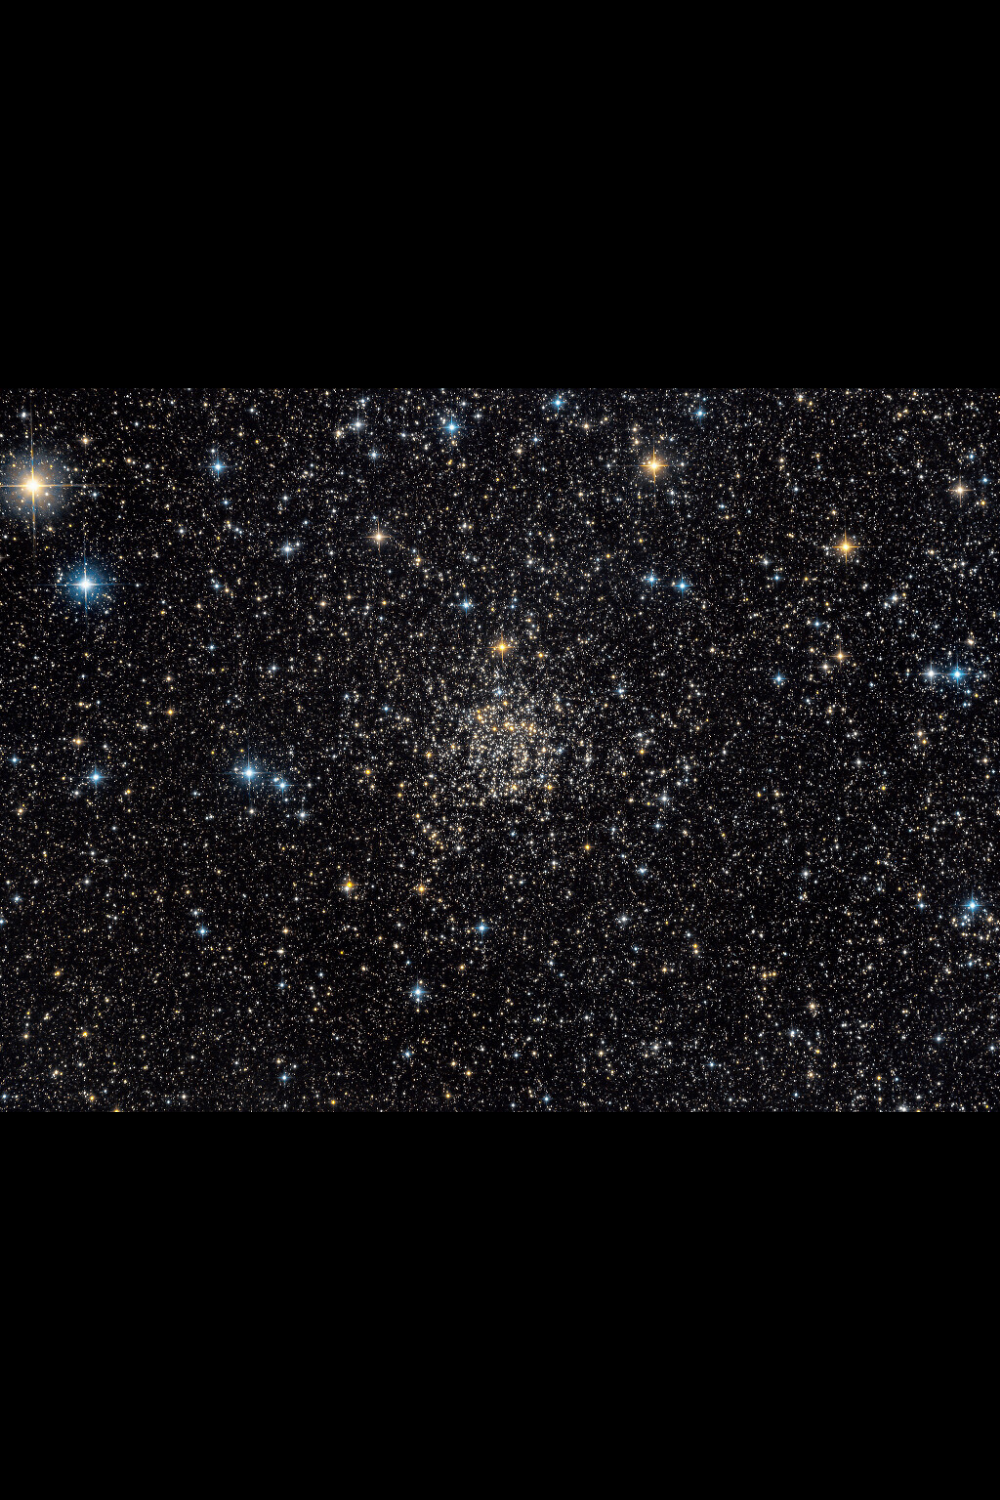 Ngc 7789 Caroline S Rose Astronomy Star Cluster Space Facts